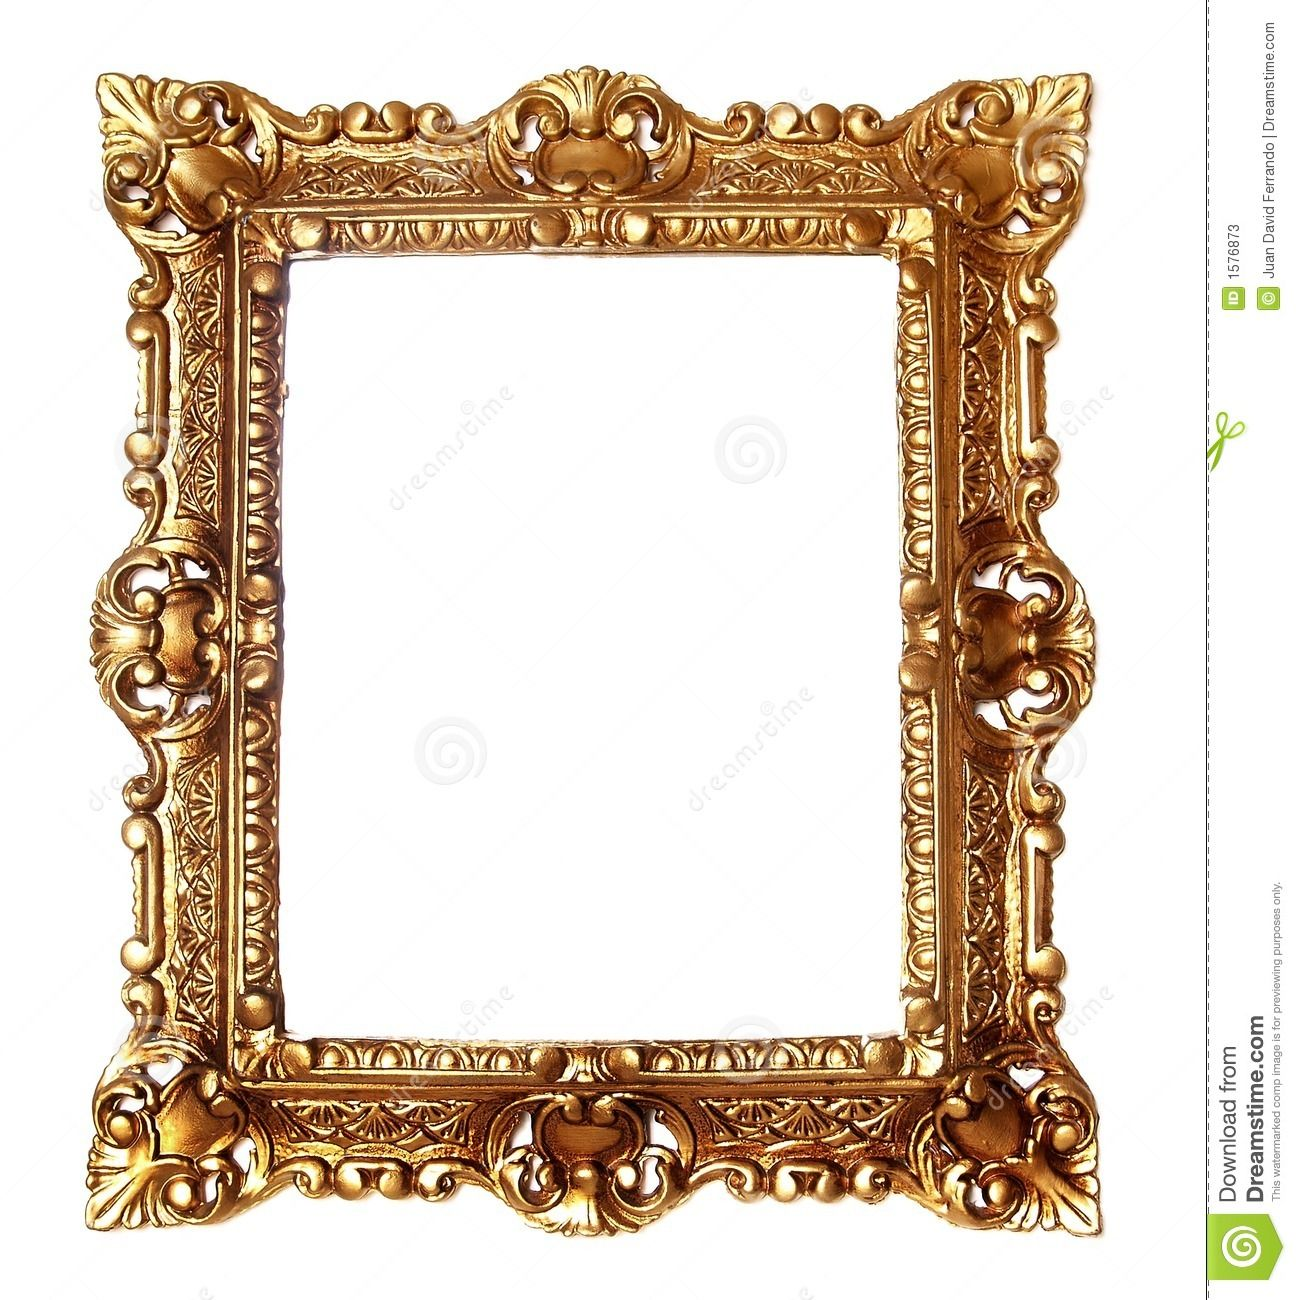 Frame image clipart clipart royalty free Antique Frame Clipart Gold | Clipart Panda - Free Clipart Images ... clipart royalty free